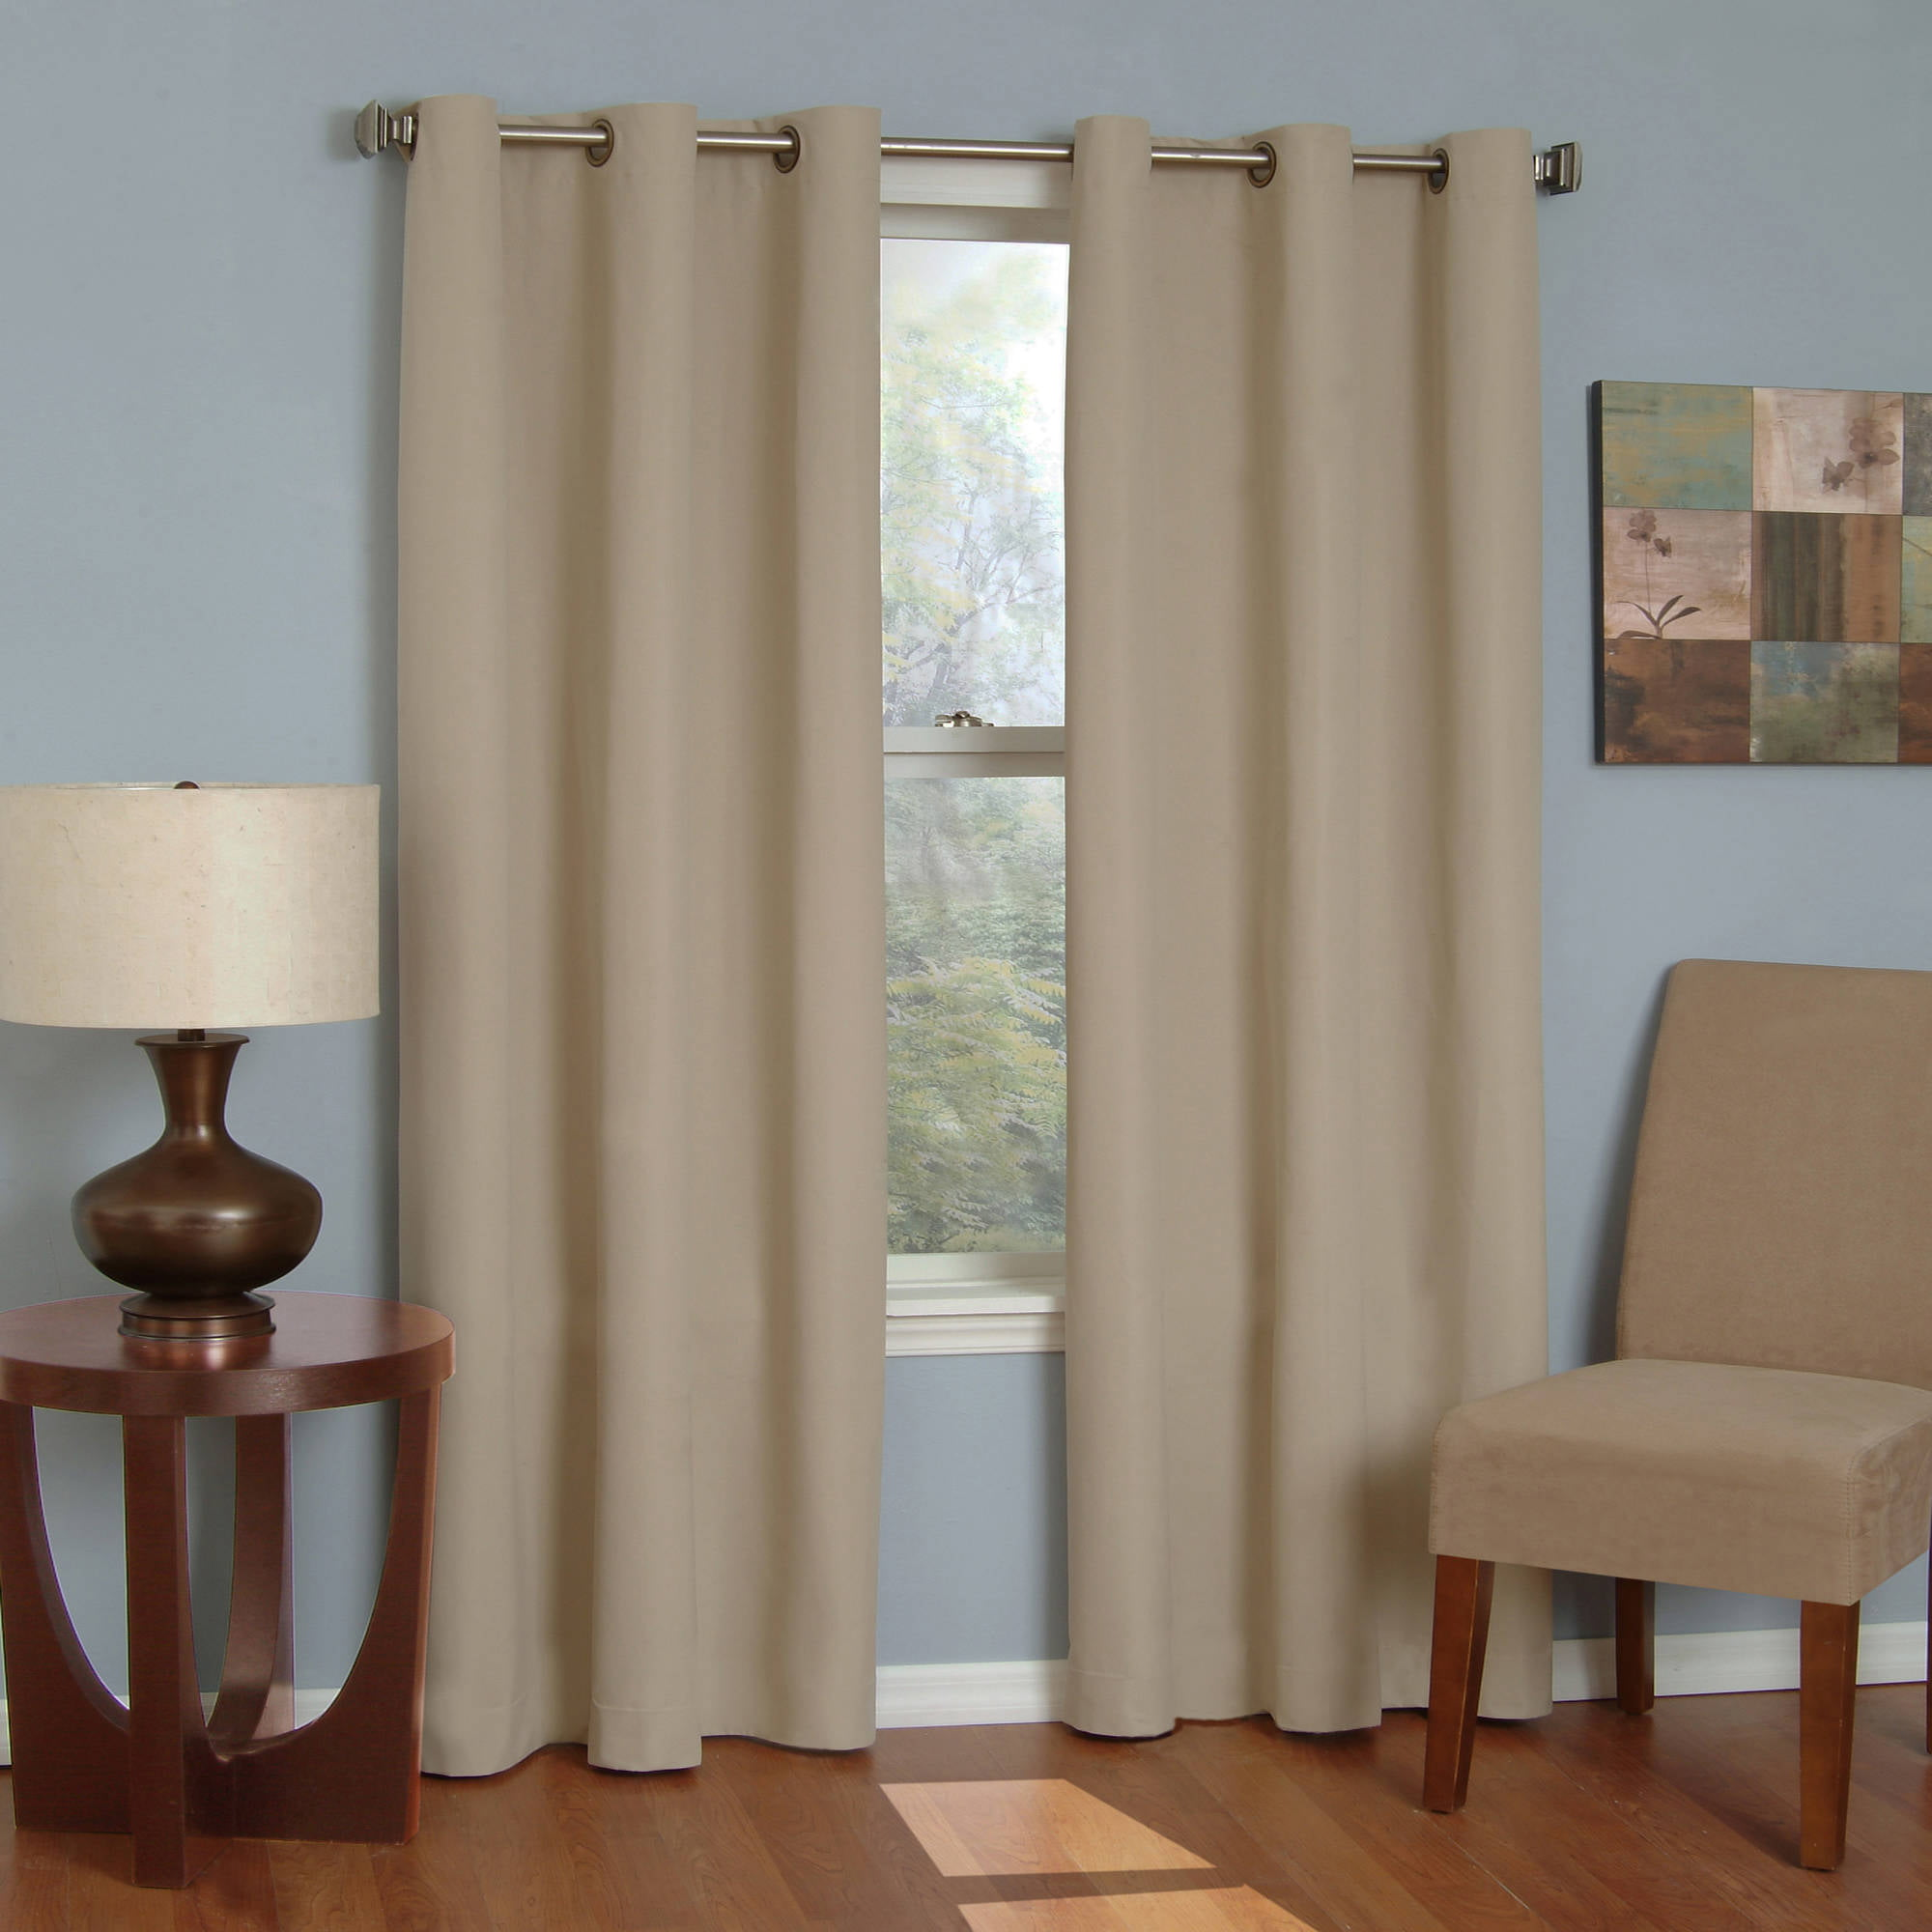 curtains window blackout panel out insulated grommet and tacoma black double tadobloutgrp